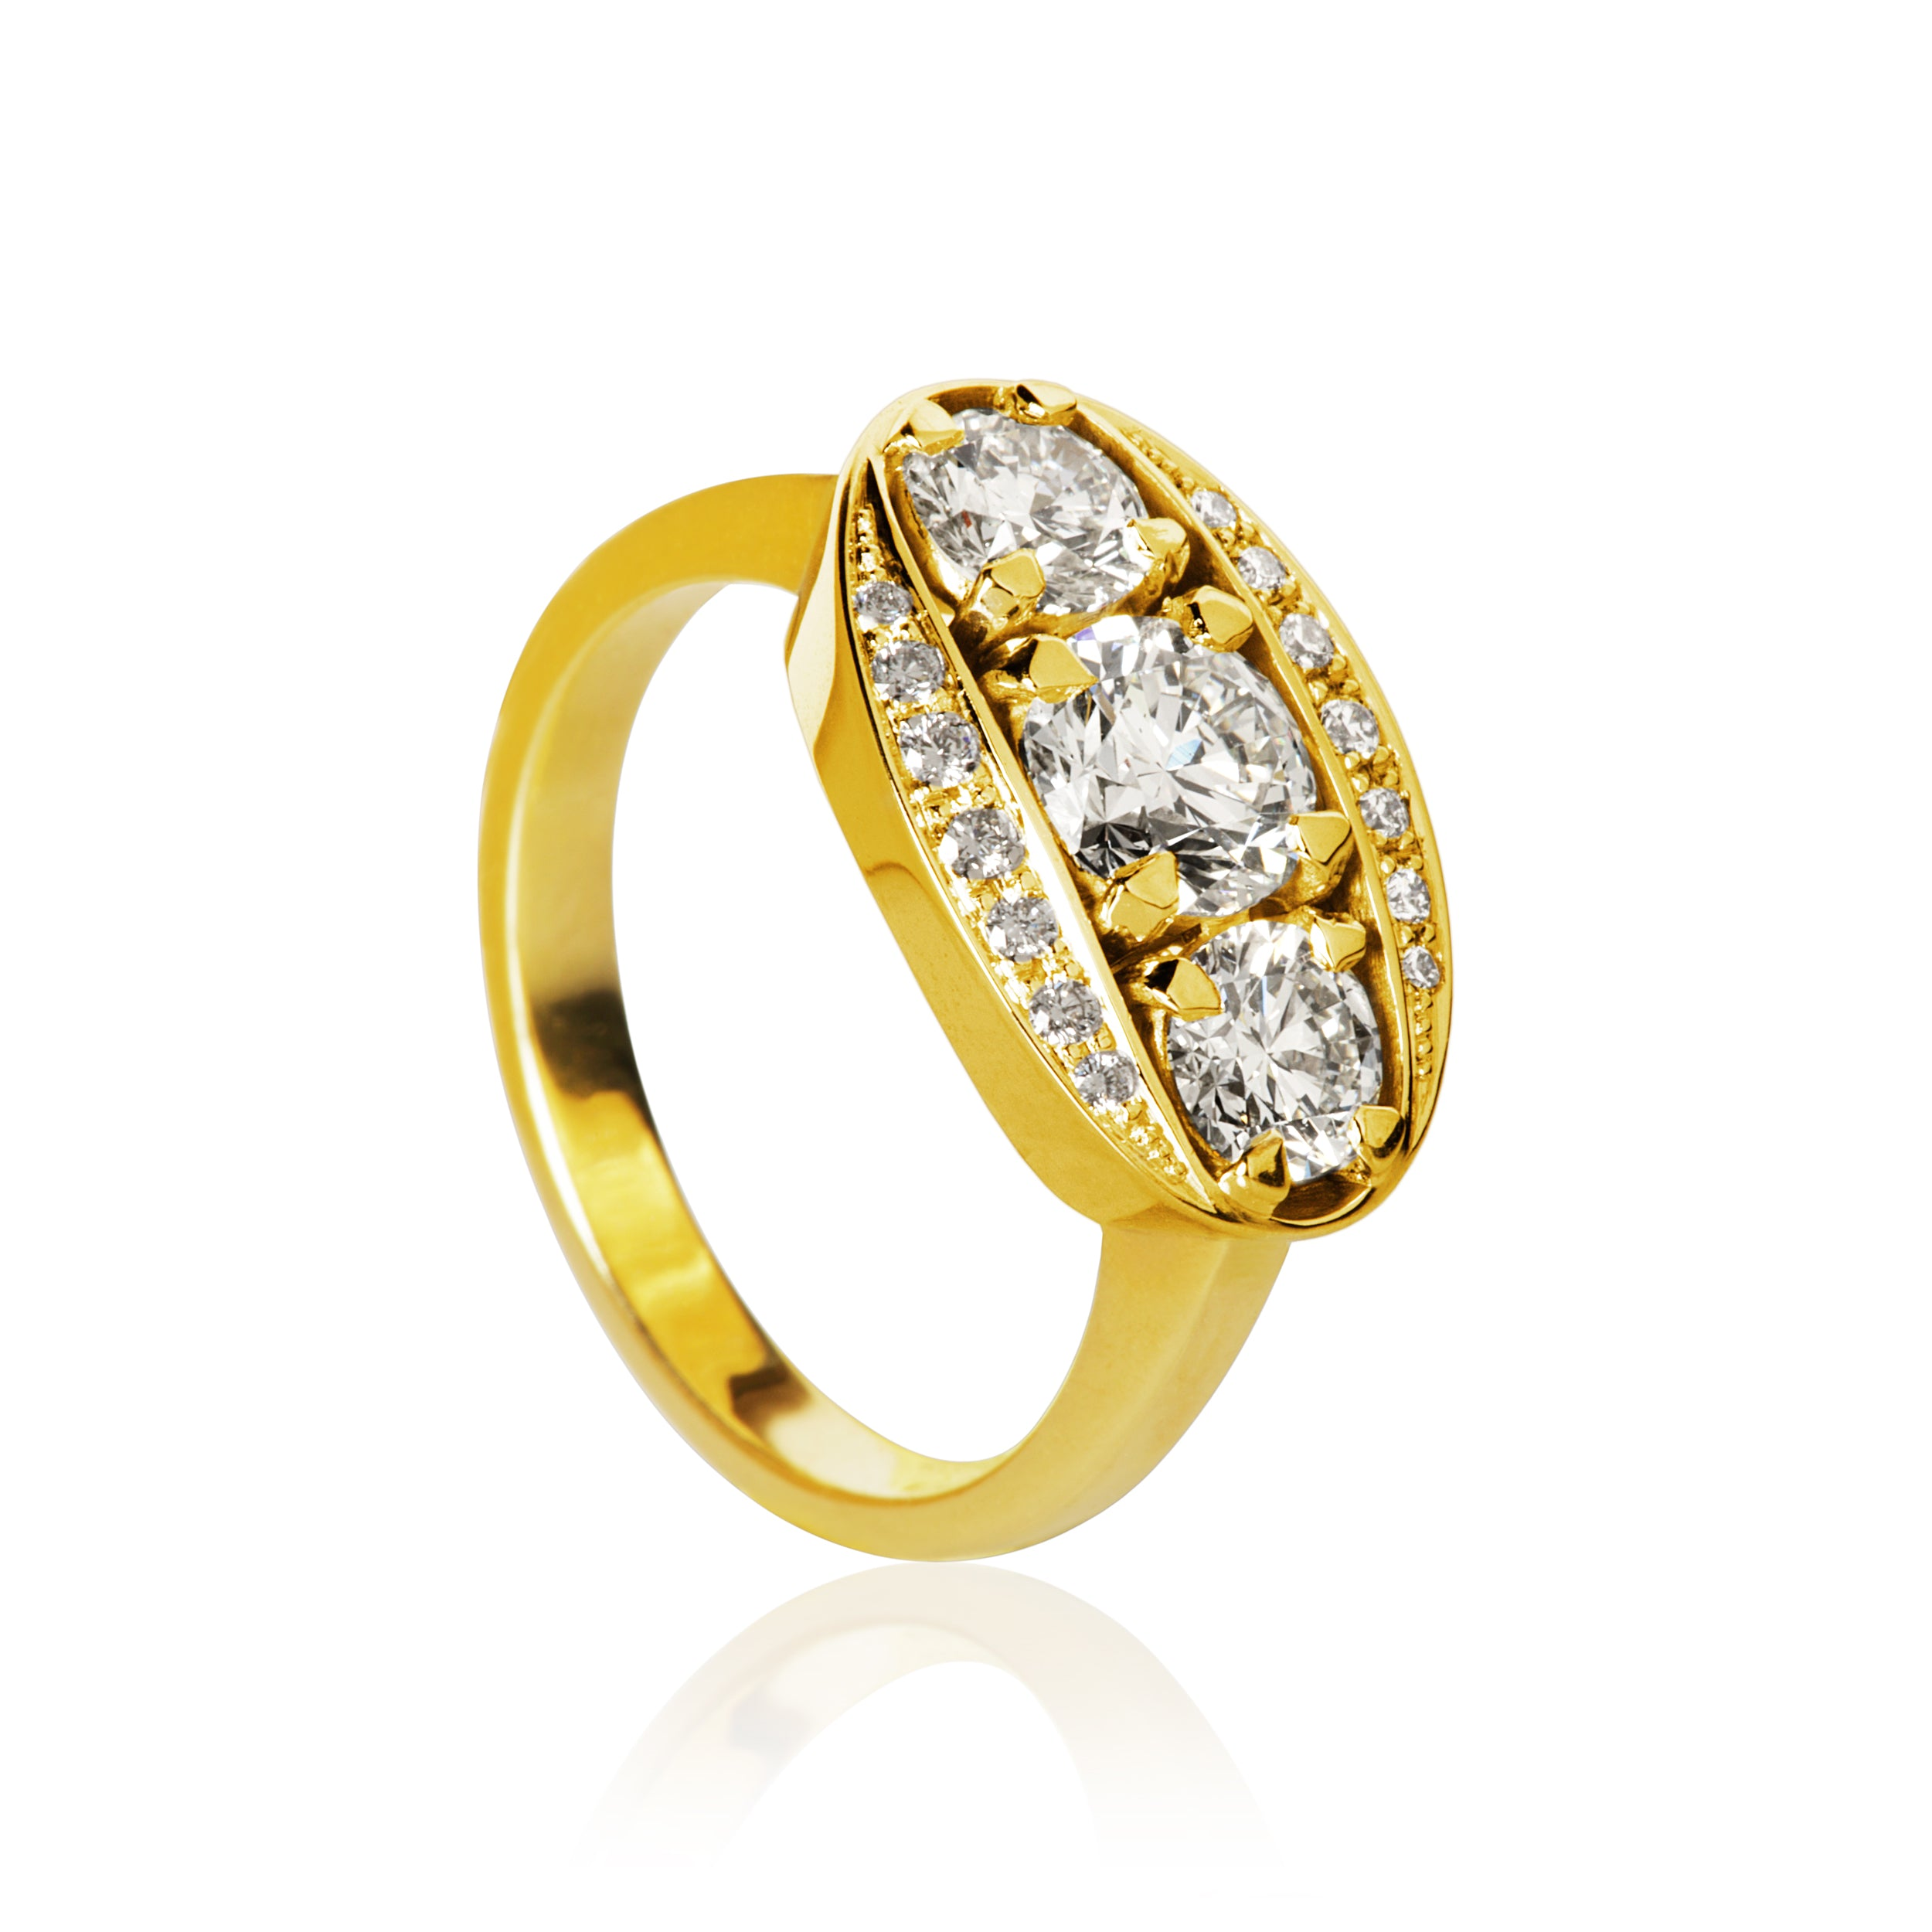 Halo ring. With 17 brilliant cut diamonds. Total 1,74 ct. 1 x 0,80 ct. J, si1. 2 x 0,40 ct. I, si. 14 x 0,01 ct. F/G, vs, Ex. cut.